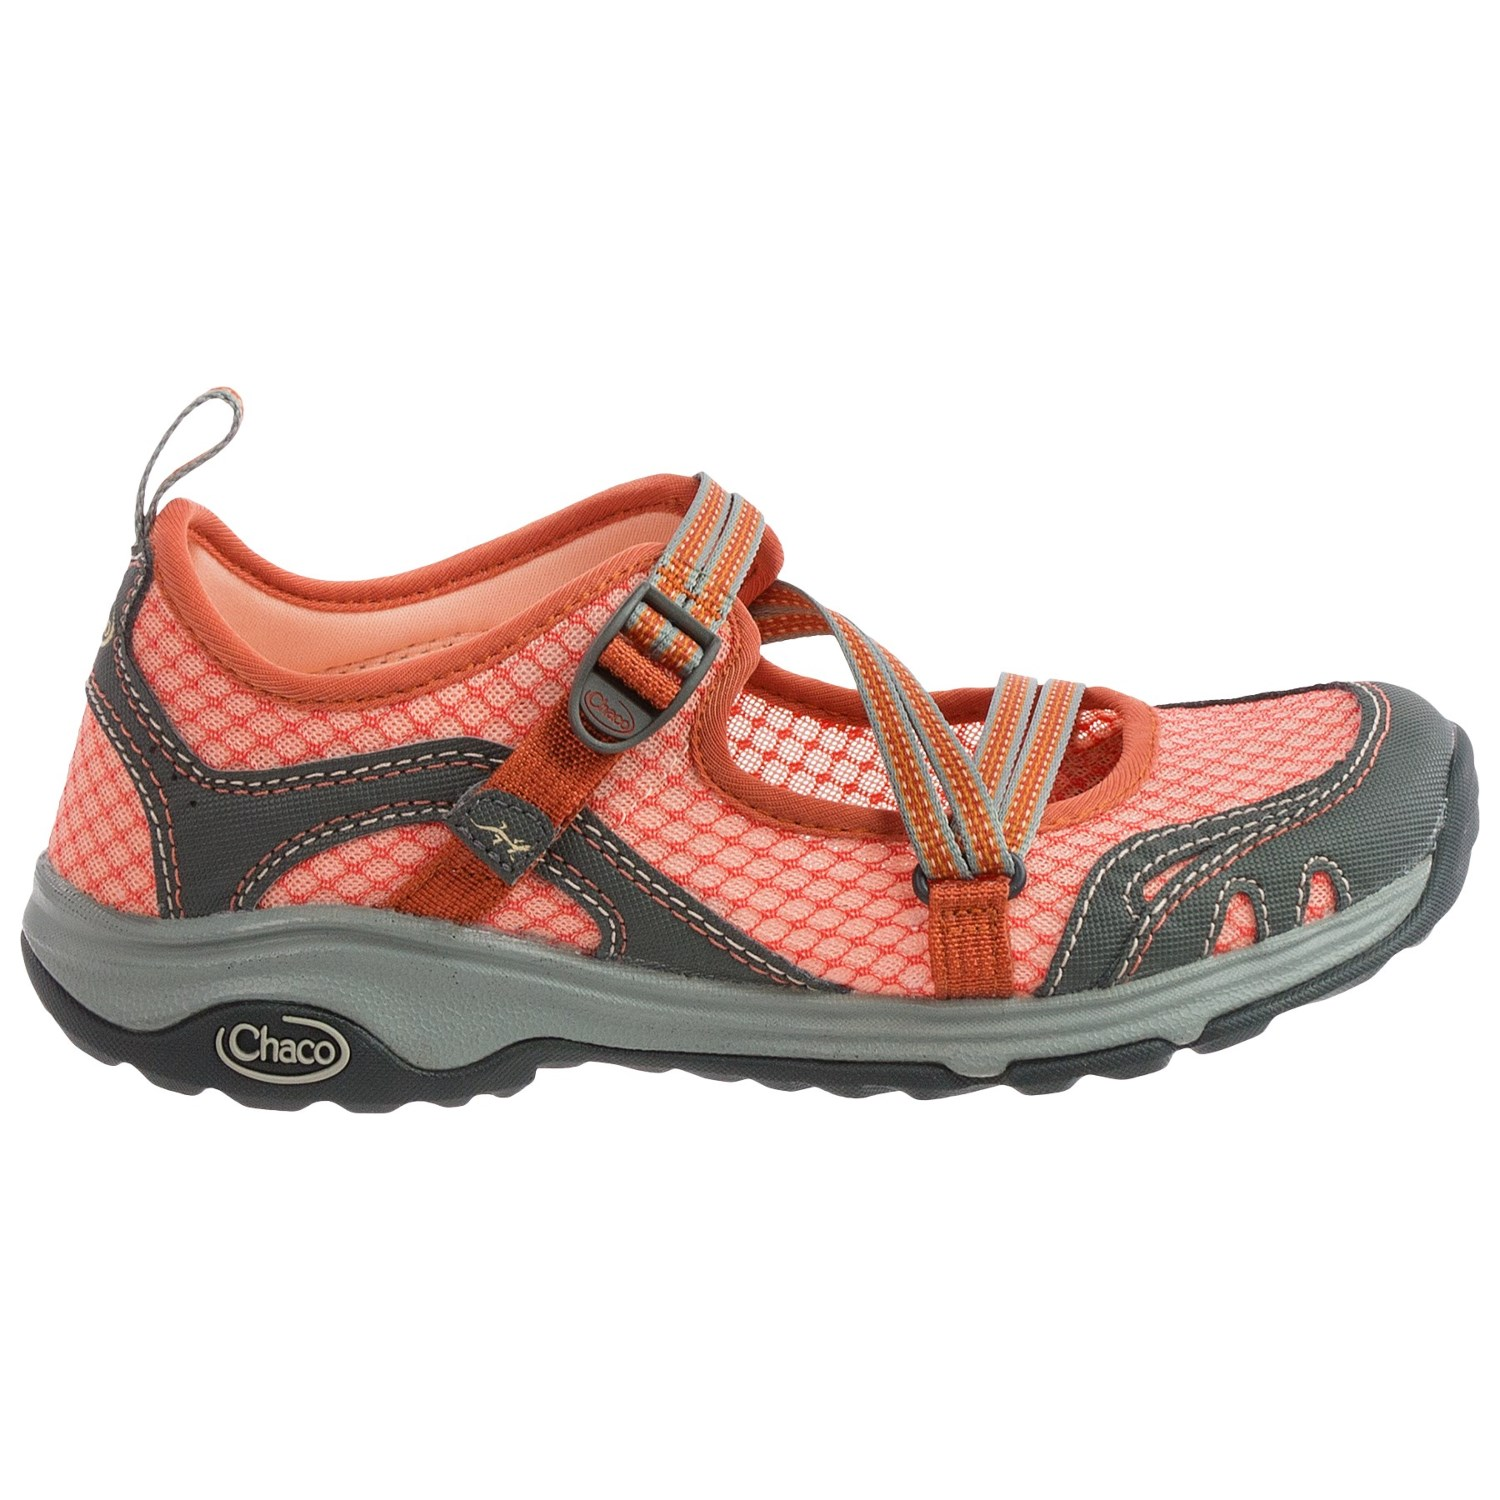 2b1ea22ee2ea Chaco OutCross Evo Mary Jane Water Shoes (For Women) - Save 40%